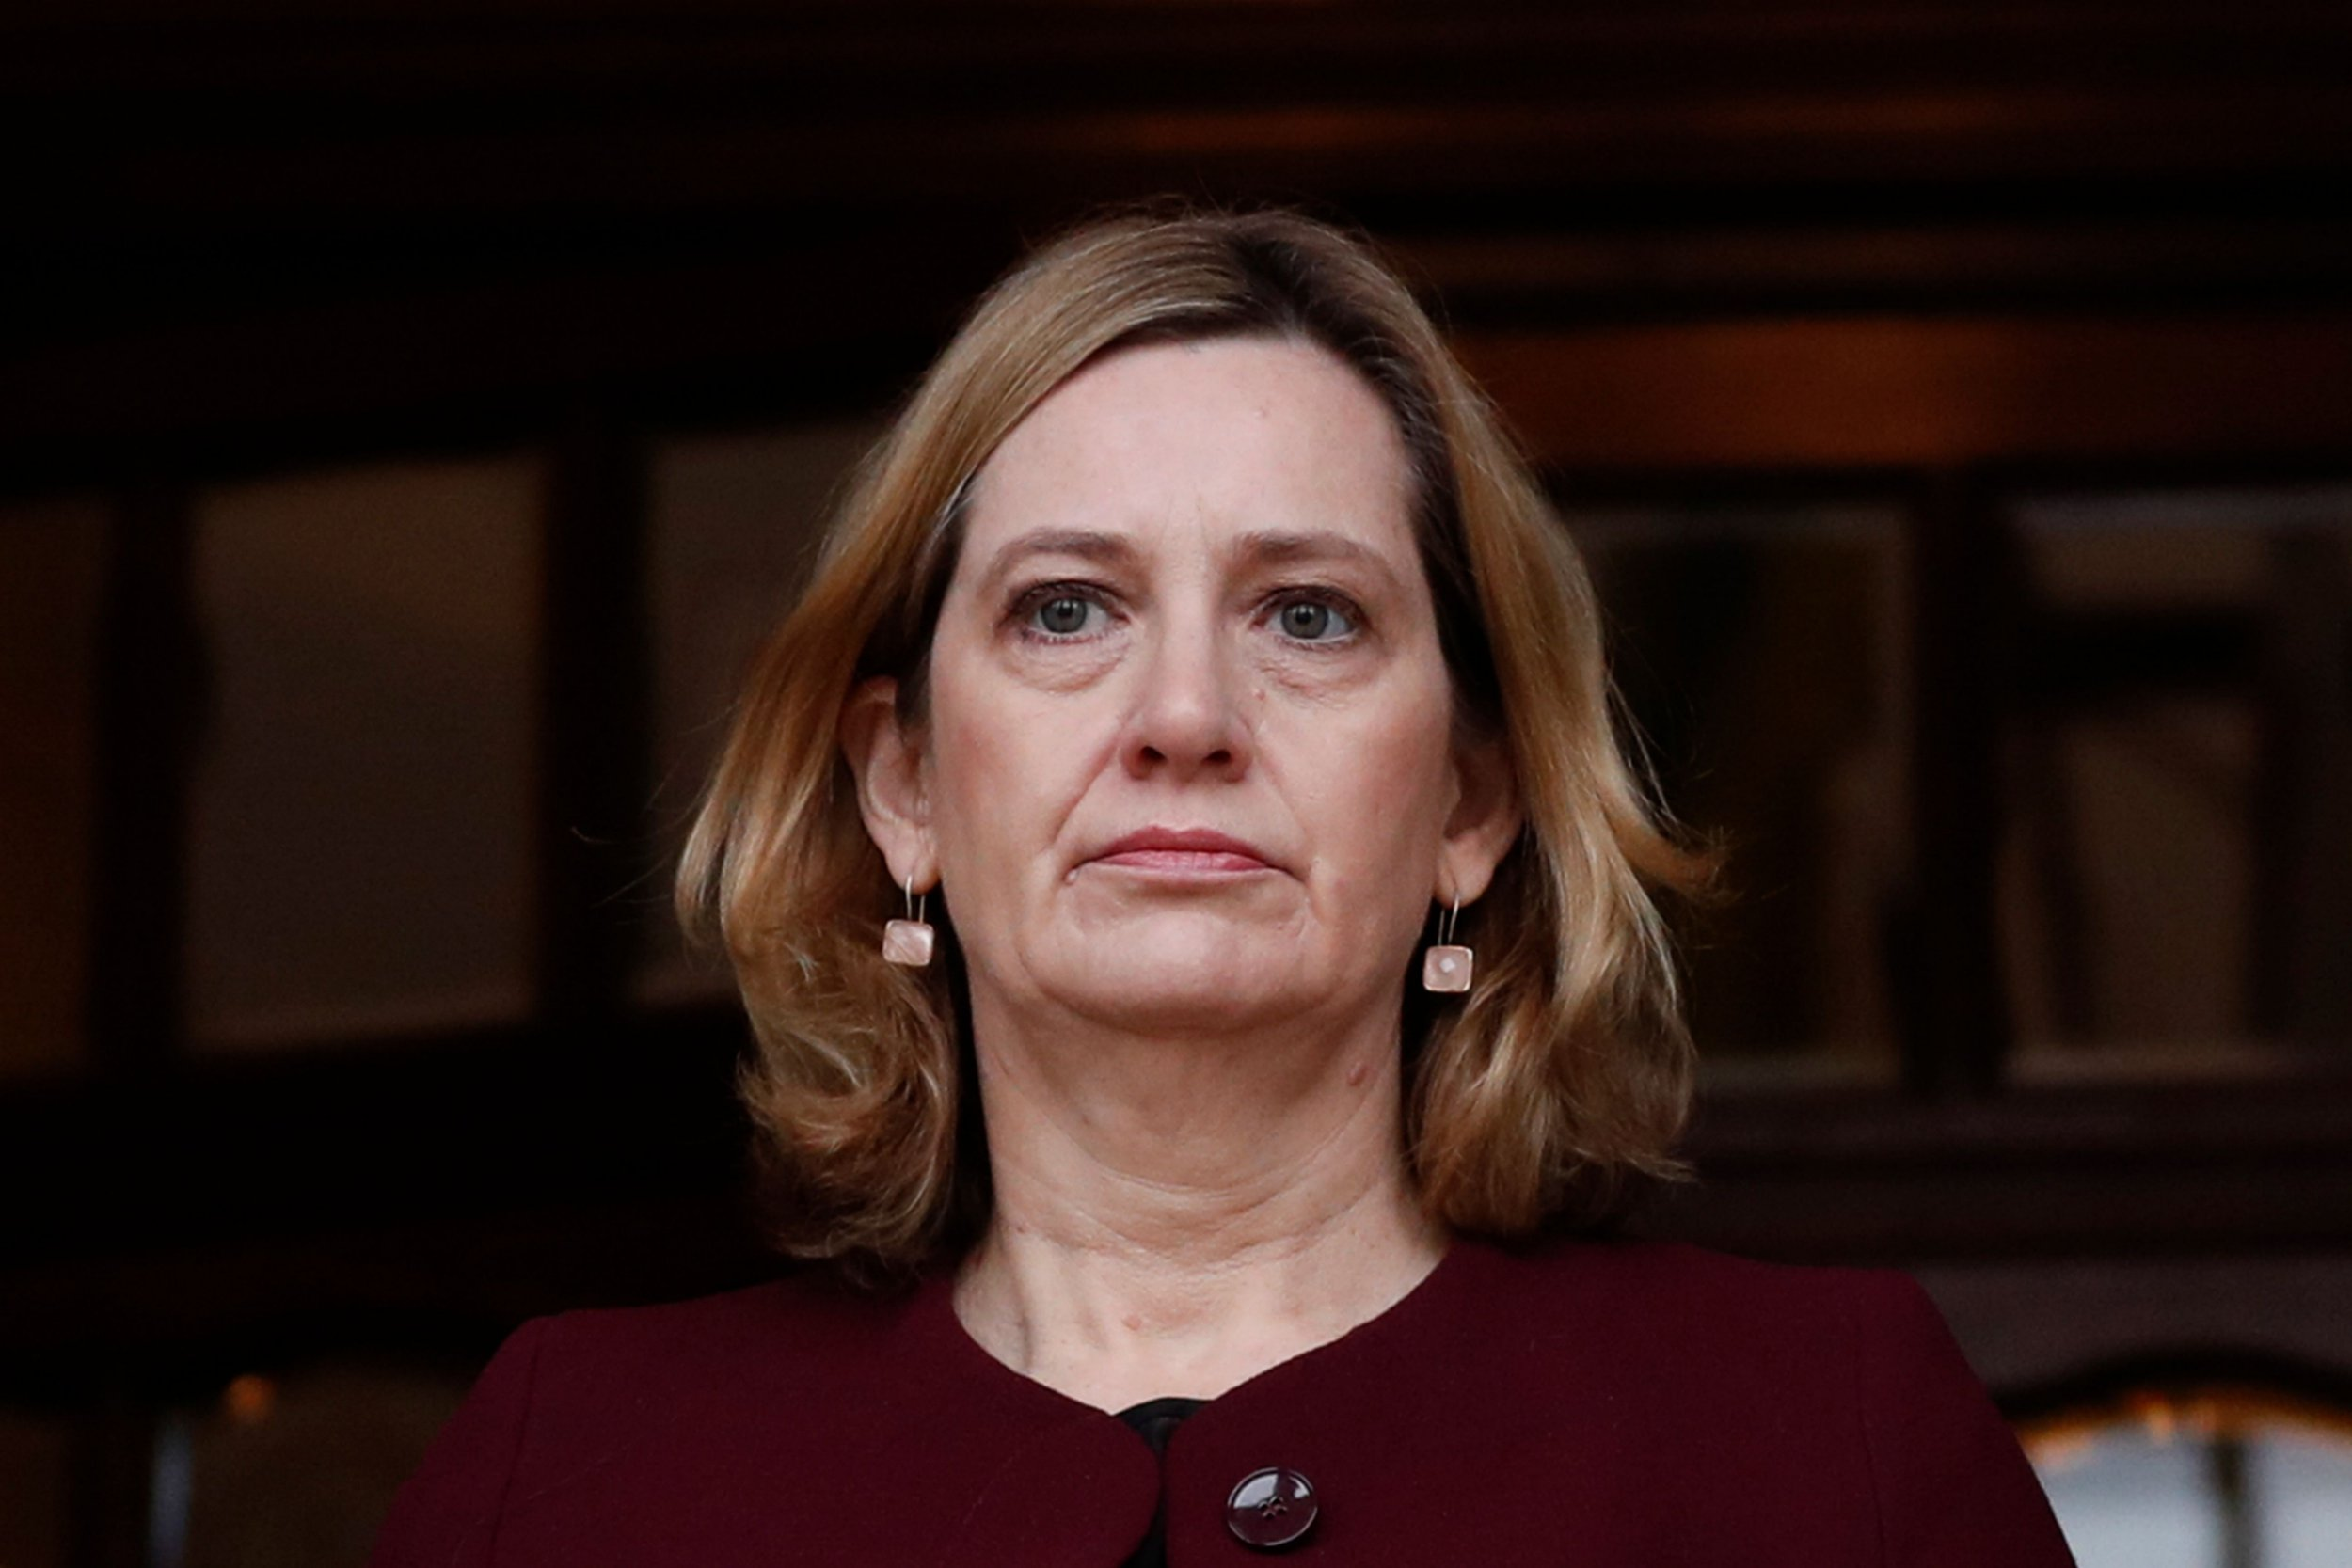 Police cuts are not responsible for rise in violence, Amber Rudd says